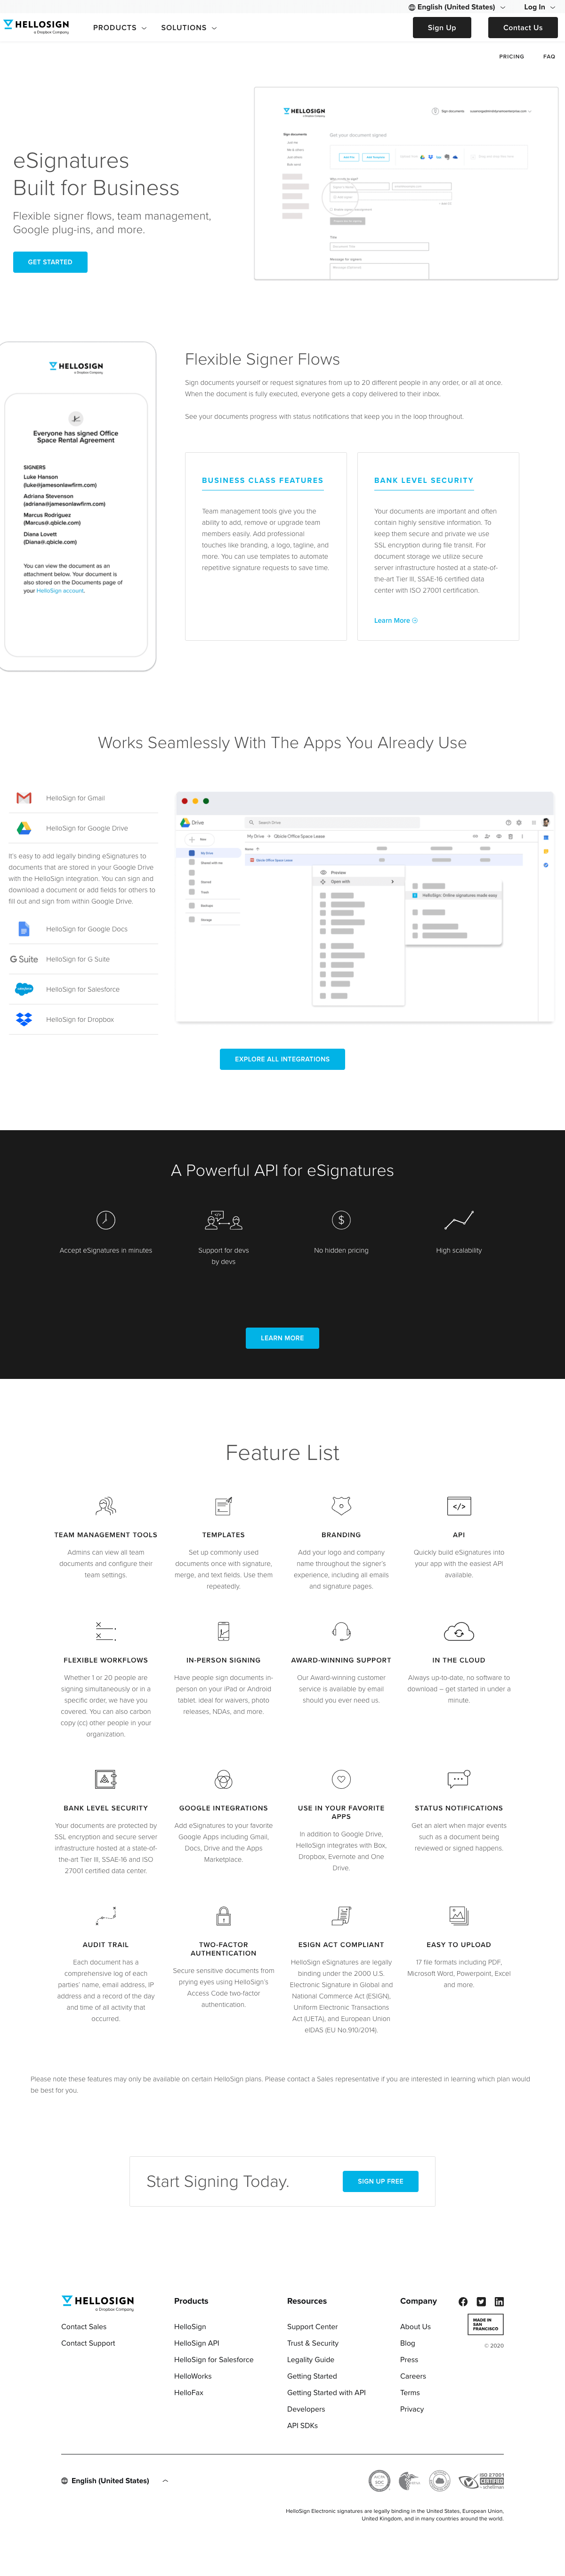 HelloSign – Features page